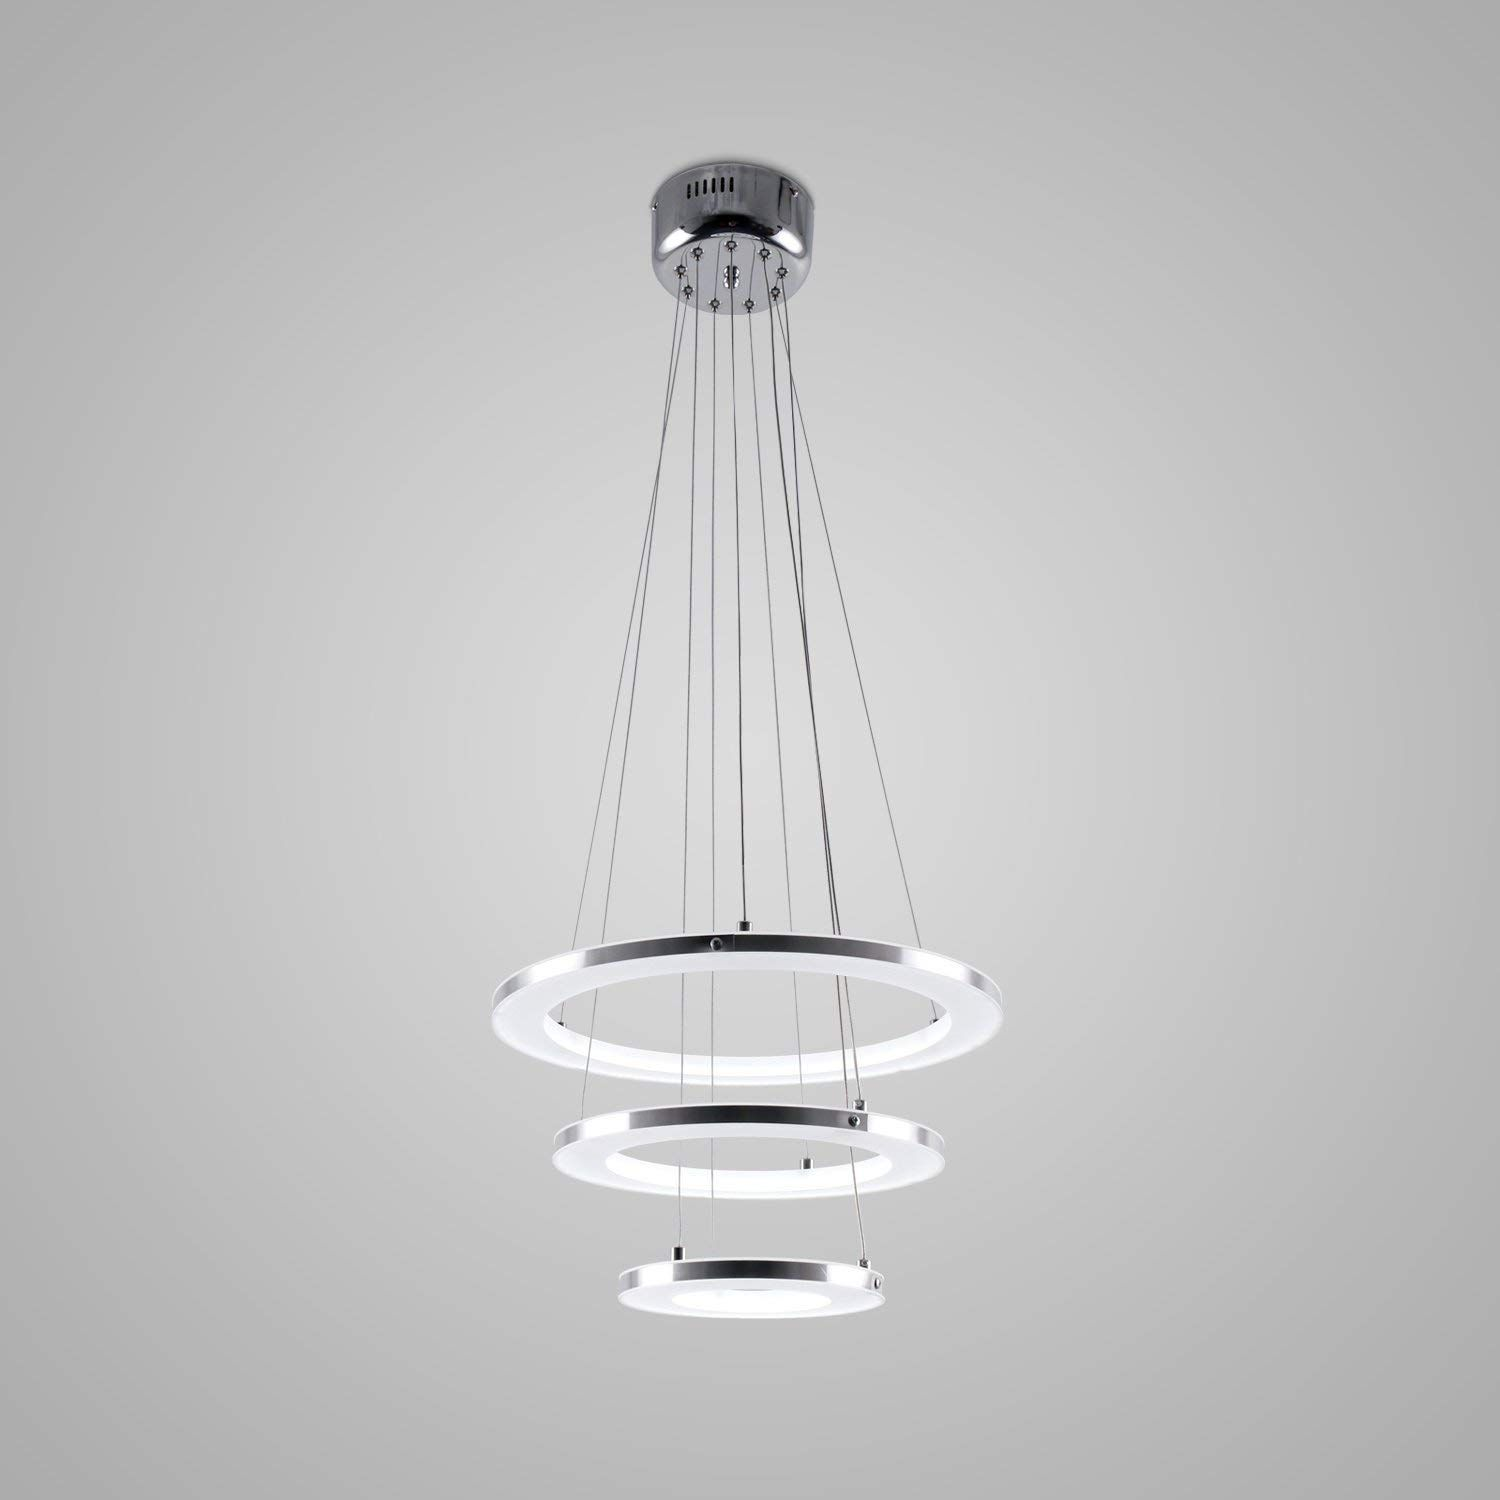 2056b31f022 LightInTheBox® Pendant Light Modern Design LED Living Three Rings ...